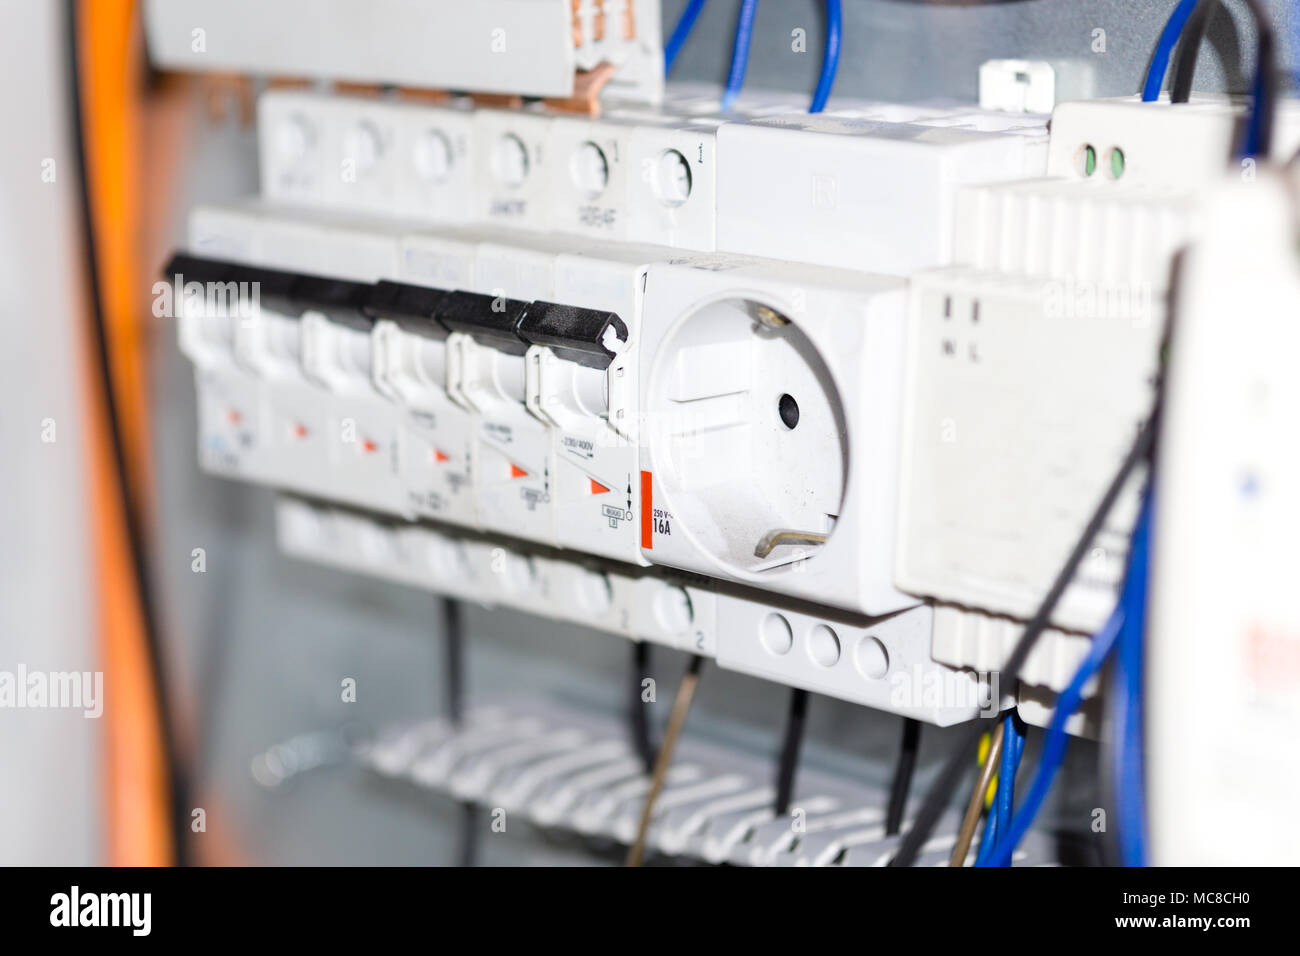 Electrical equipment components installation in fuse box. Wiring and  connections.